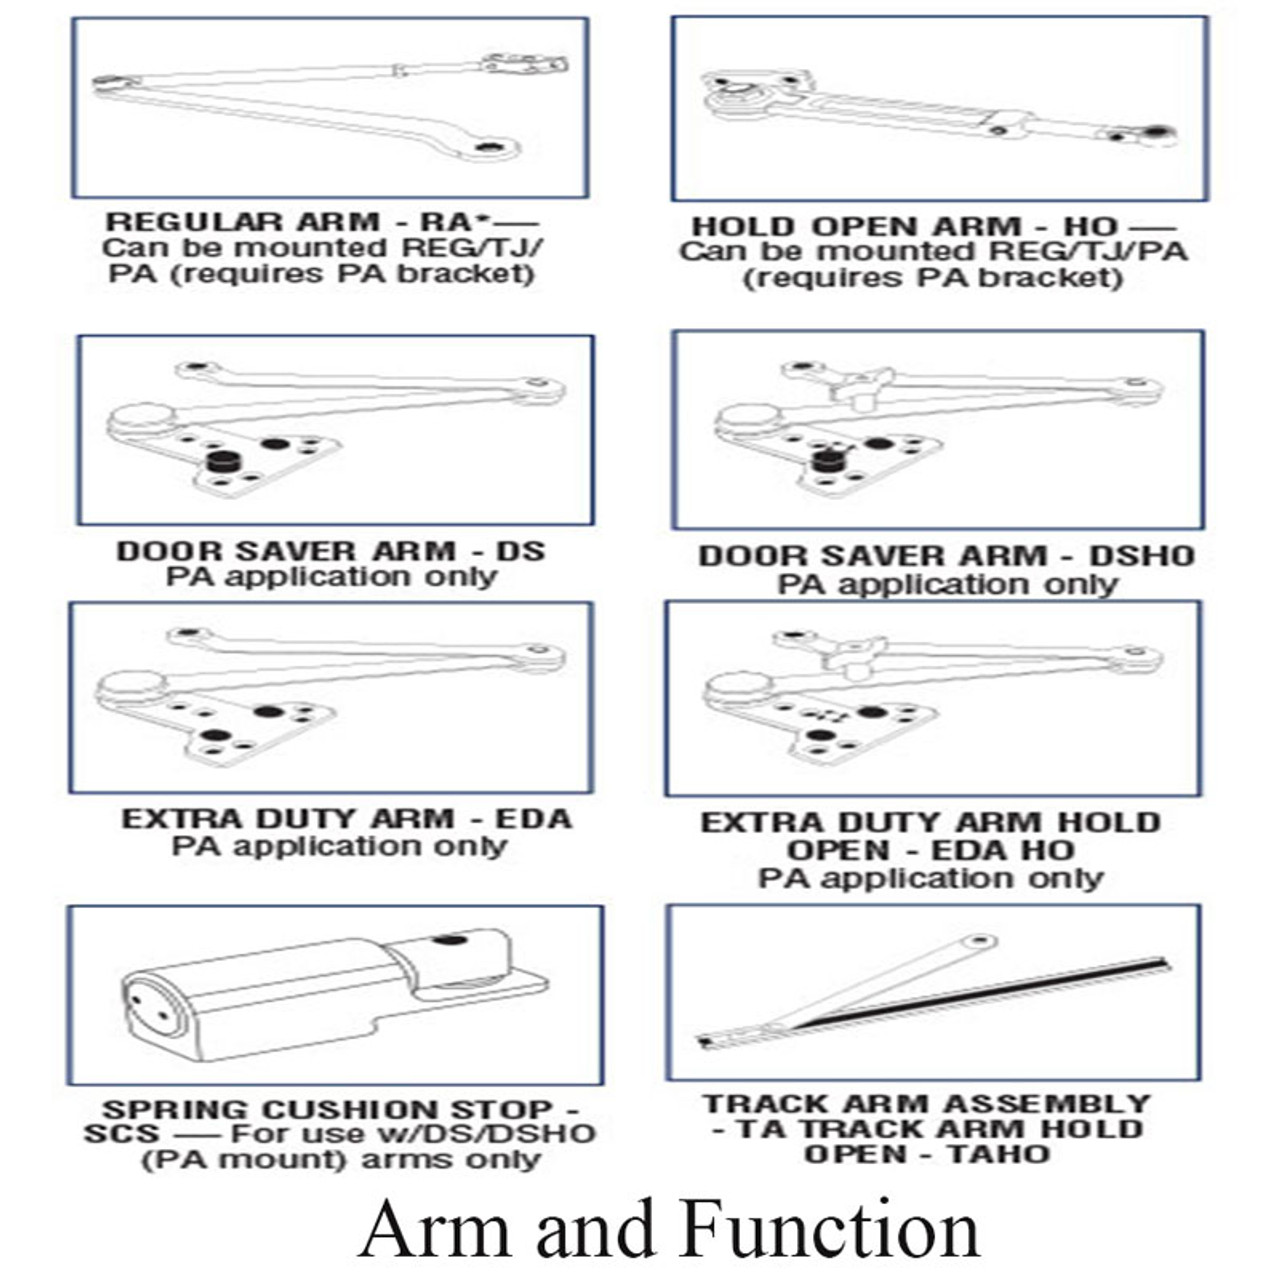 ... PDQ American Eagle 5500 Series Door Closer - detail 1 ...  sc 1 st  Harbor City Supply & PDQ Commercial Door Closer 5500 | Fire Rated Adjustable Control